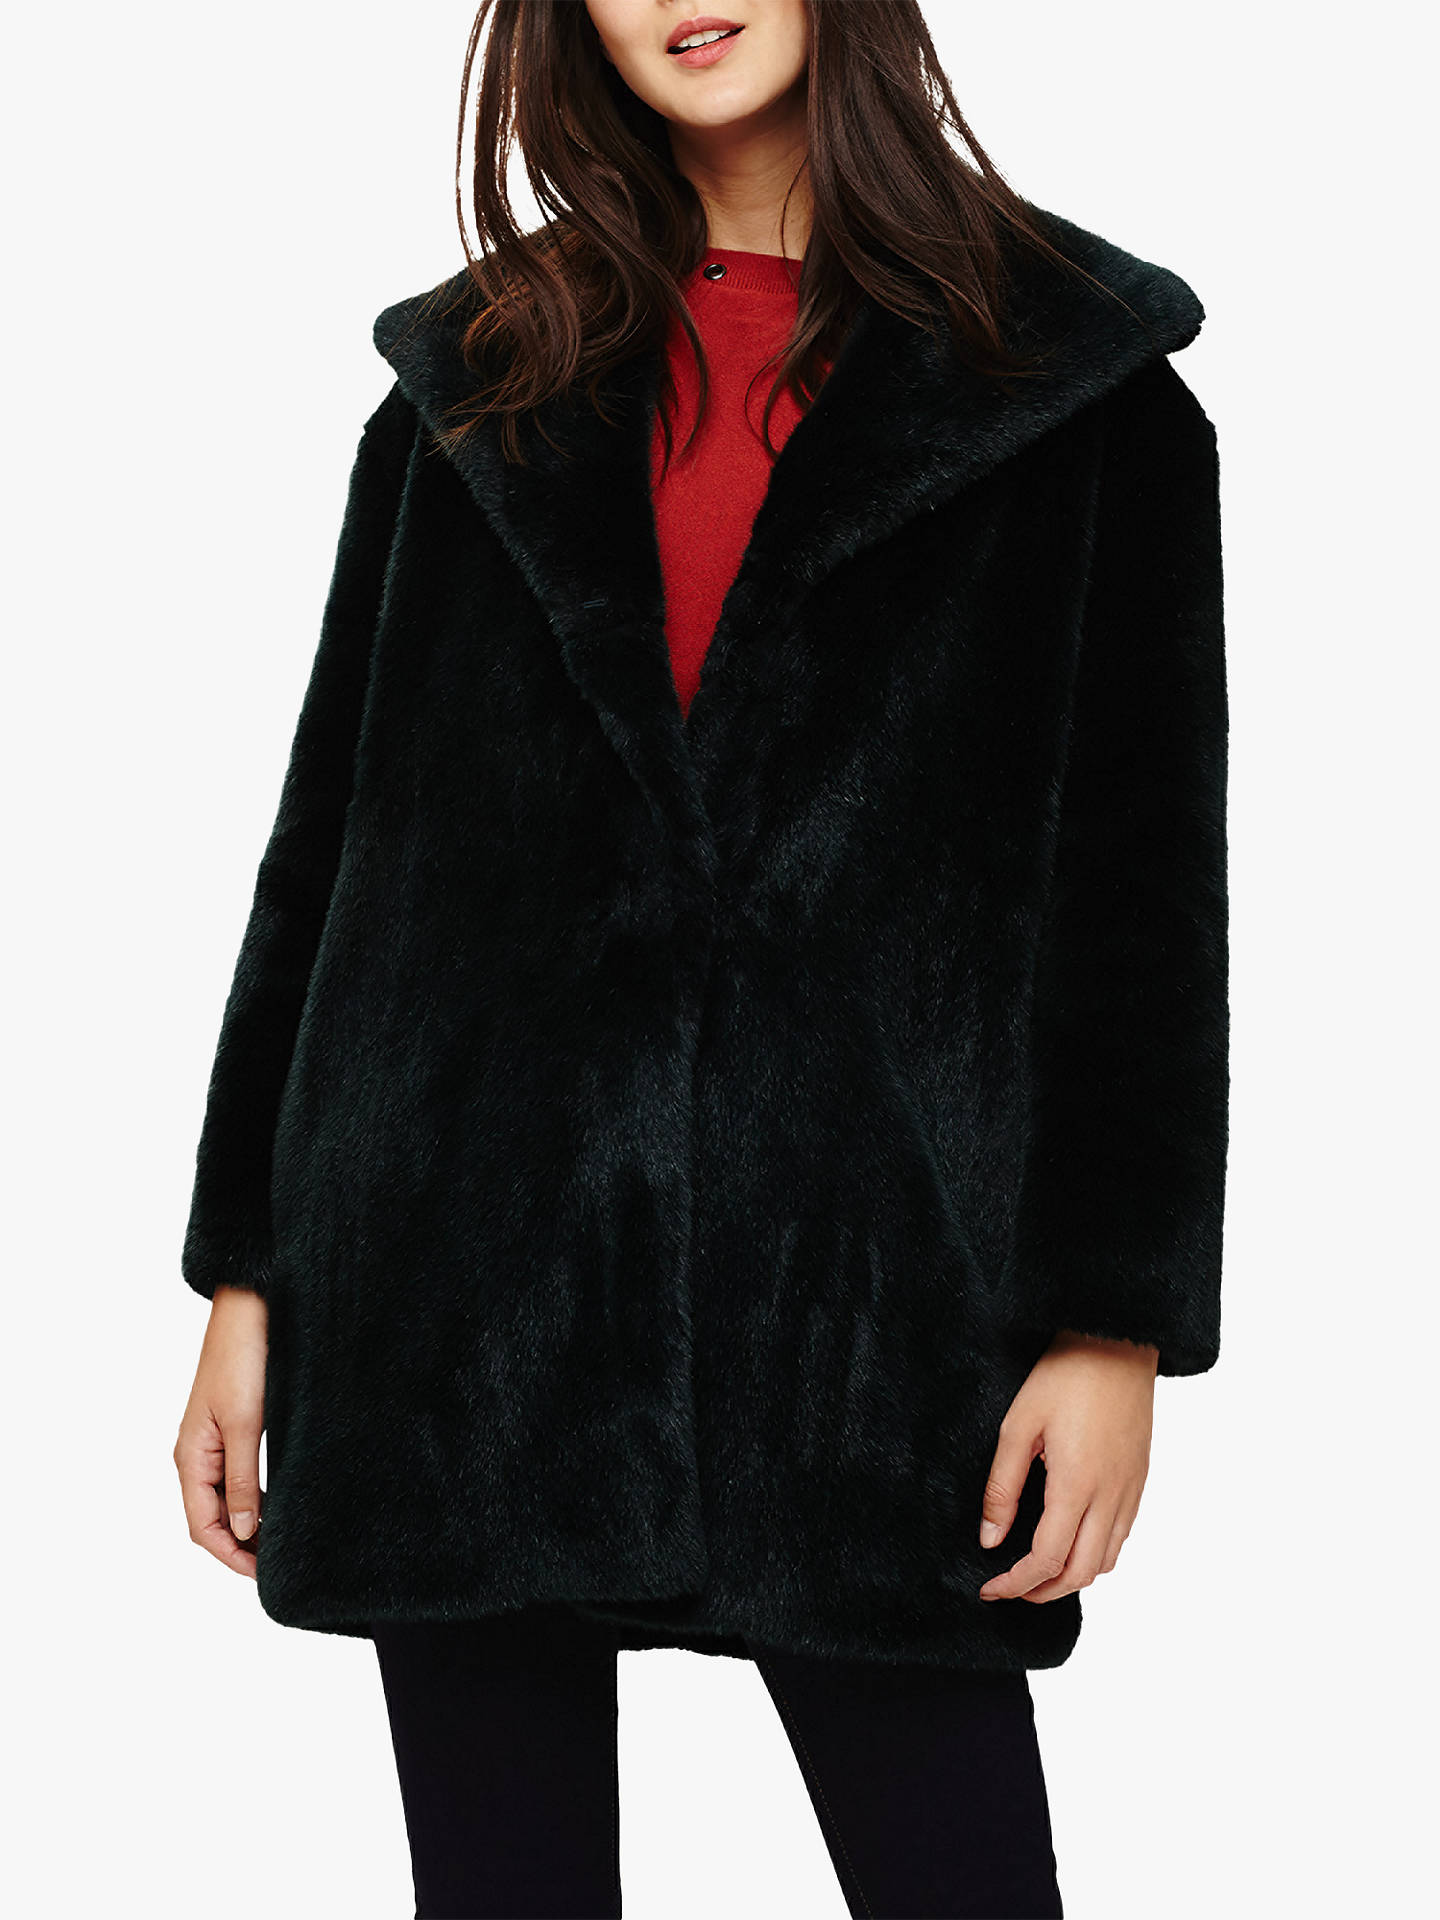 Discussion on this topic: John Lewis' best-selling winter coat will soon , john-lewis-best-selling-winter-coat-will-soon/